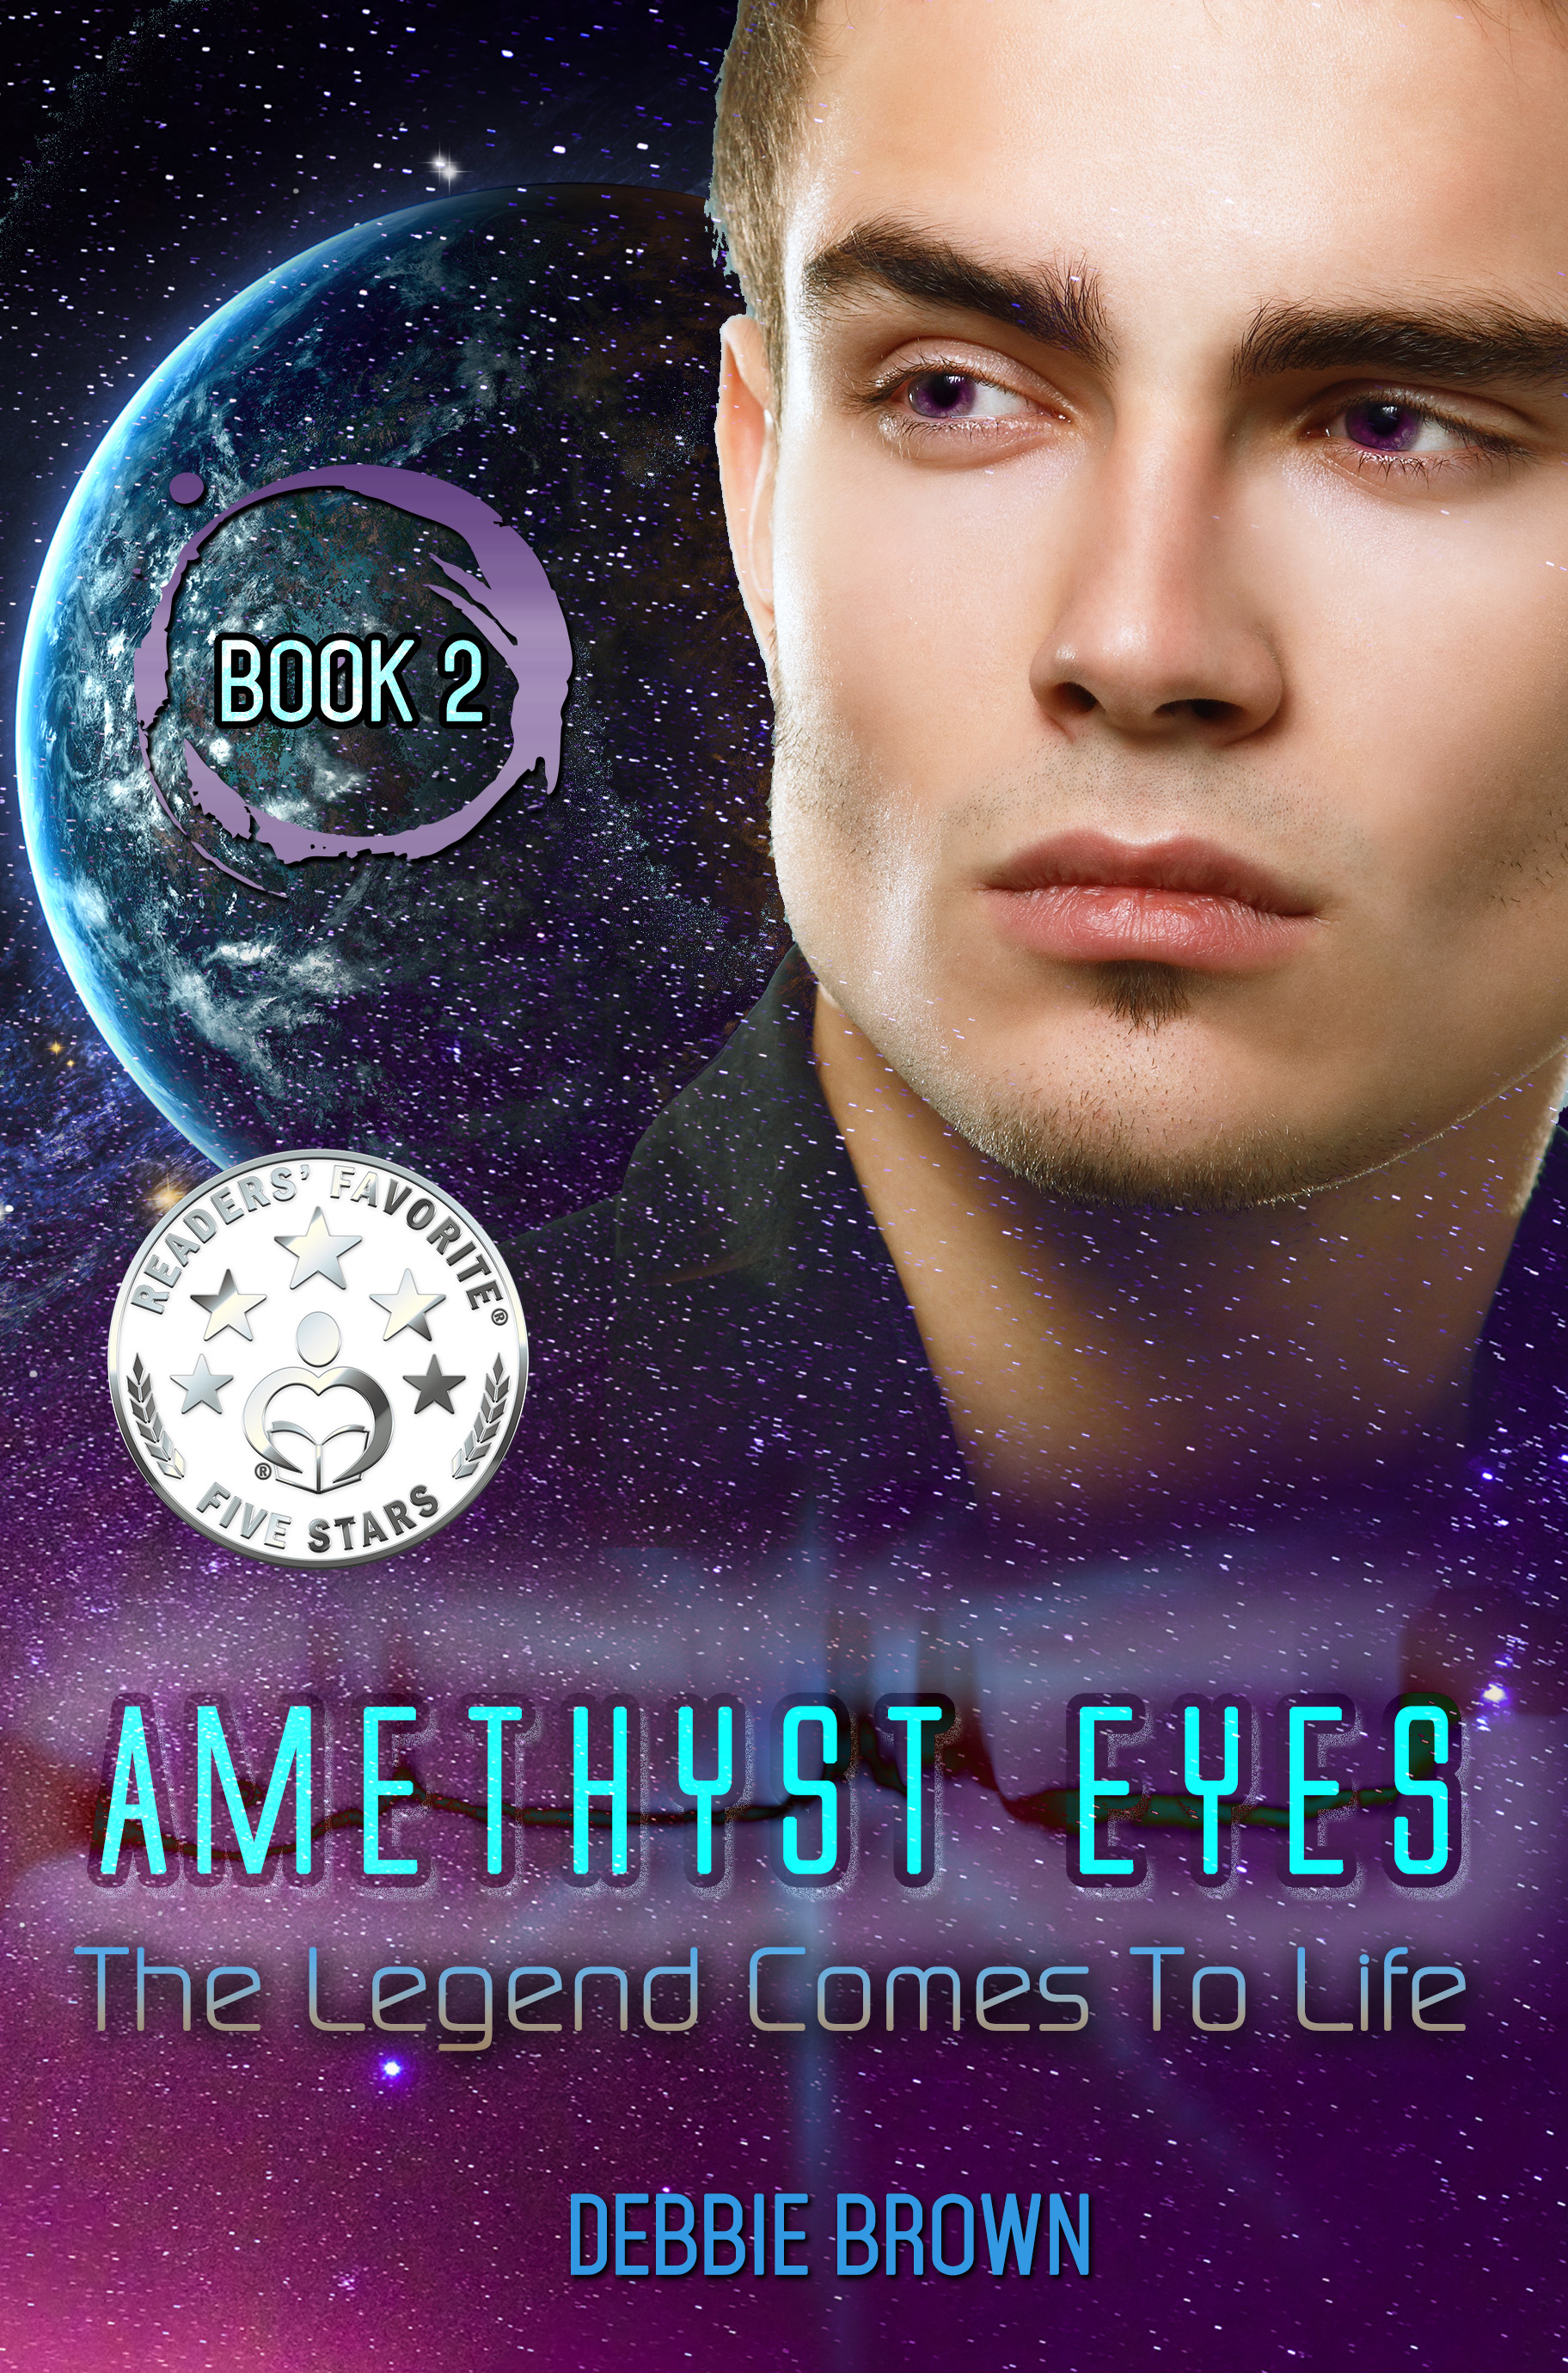 Amethyst Eyes: The Legend Comes to Life Book Cover